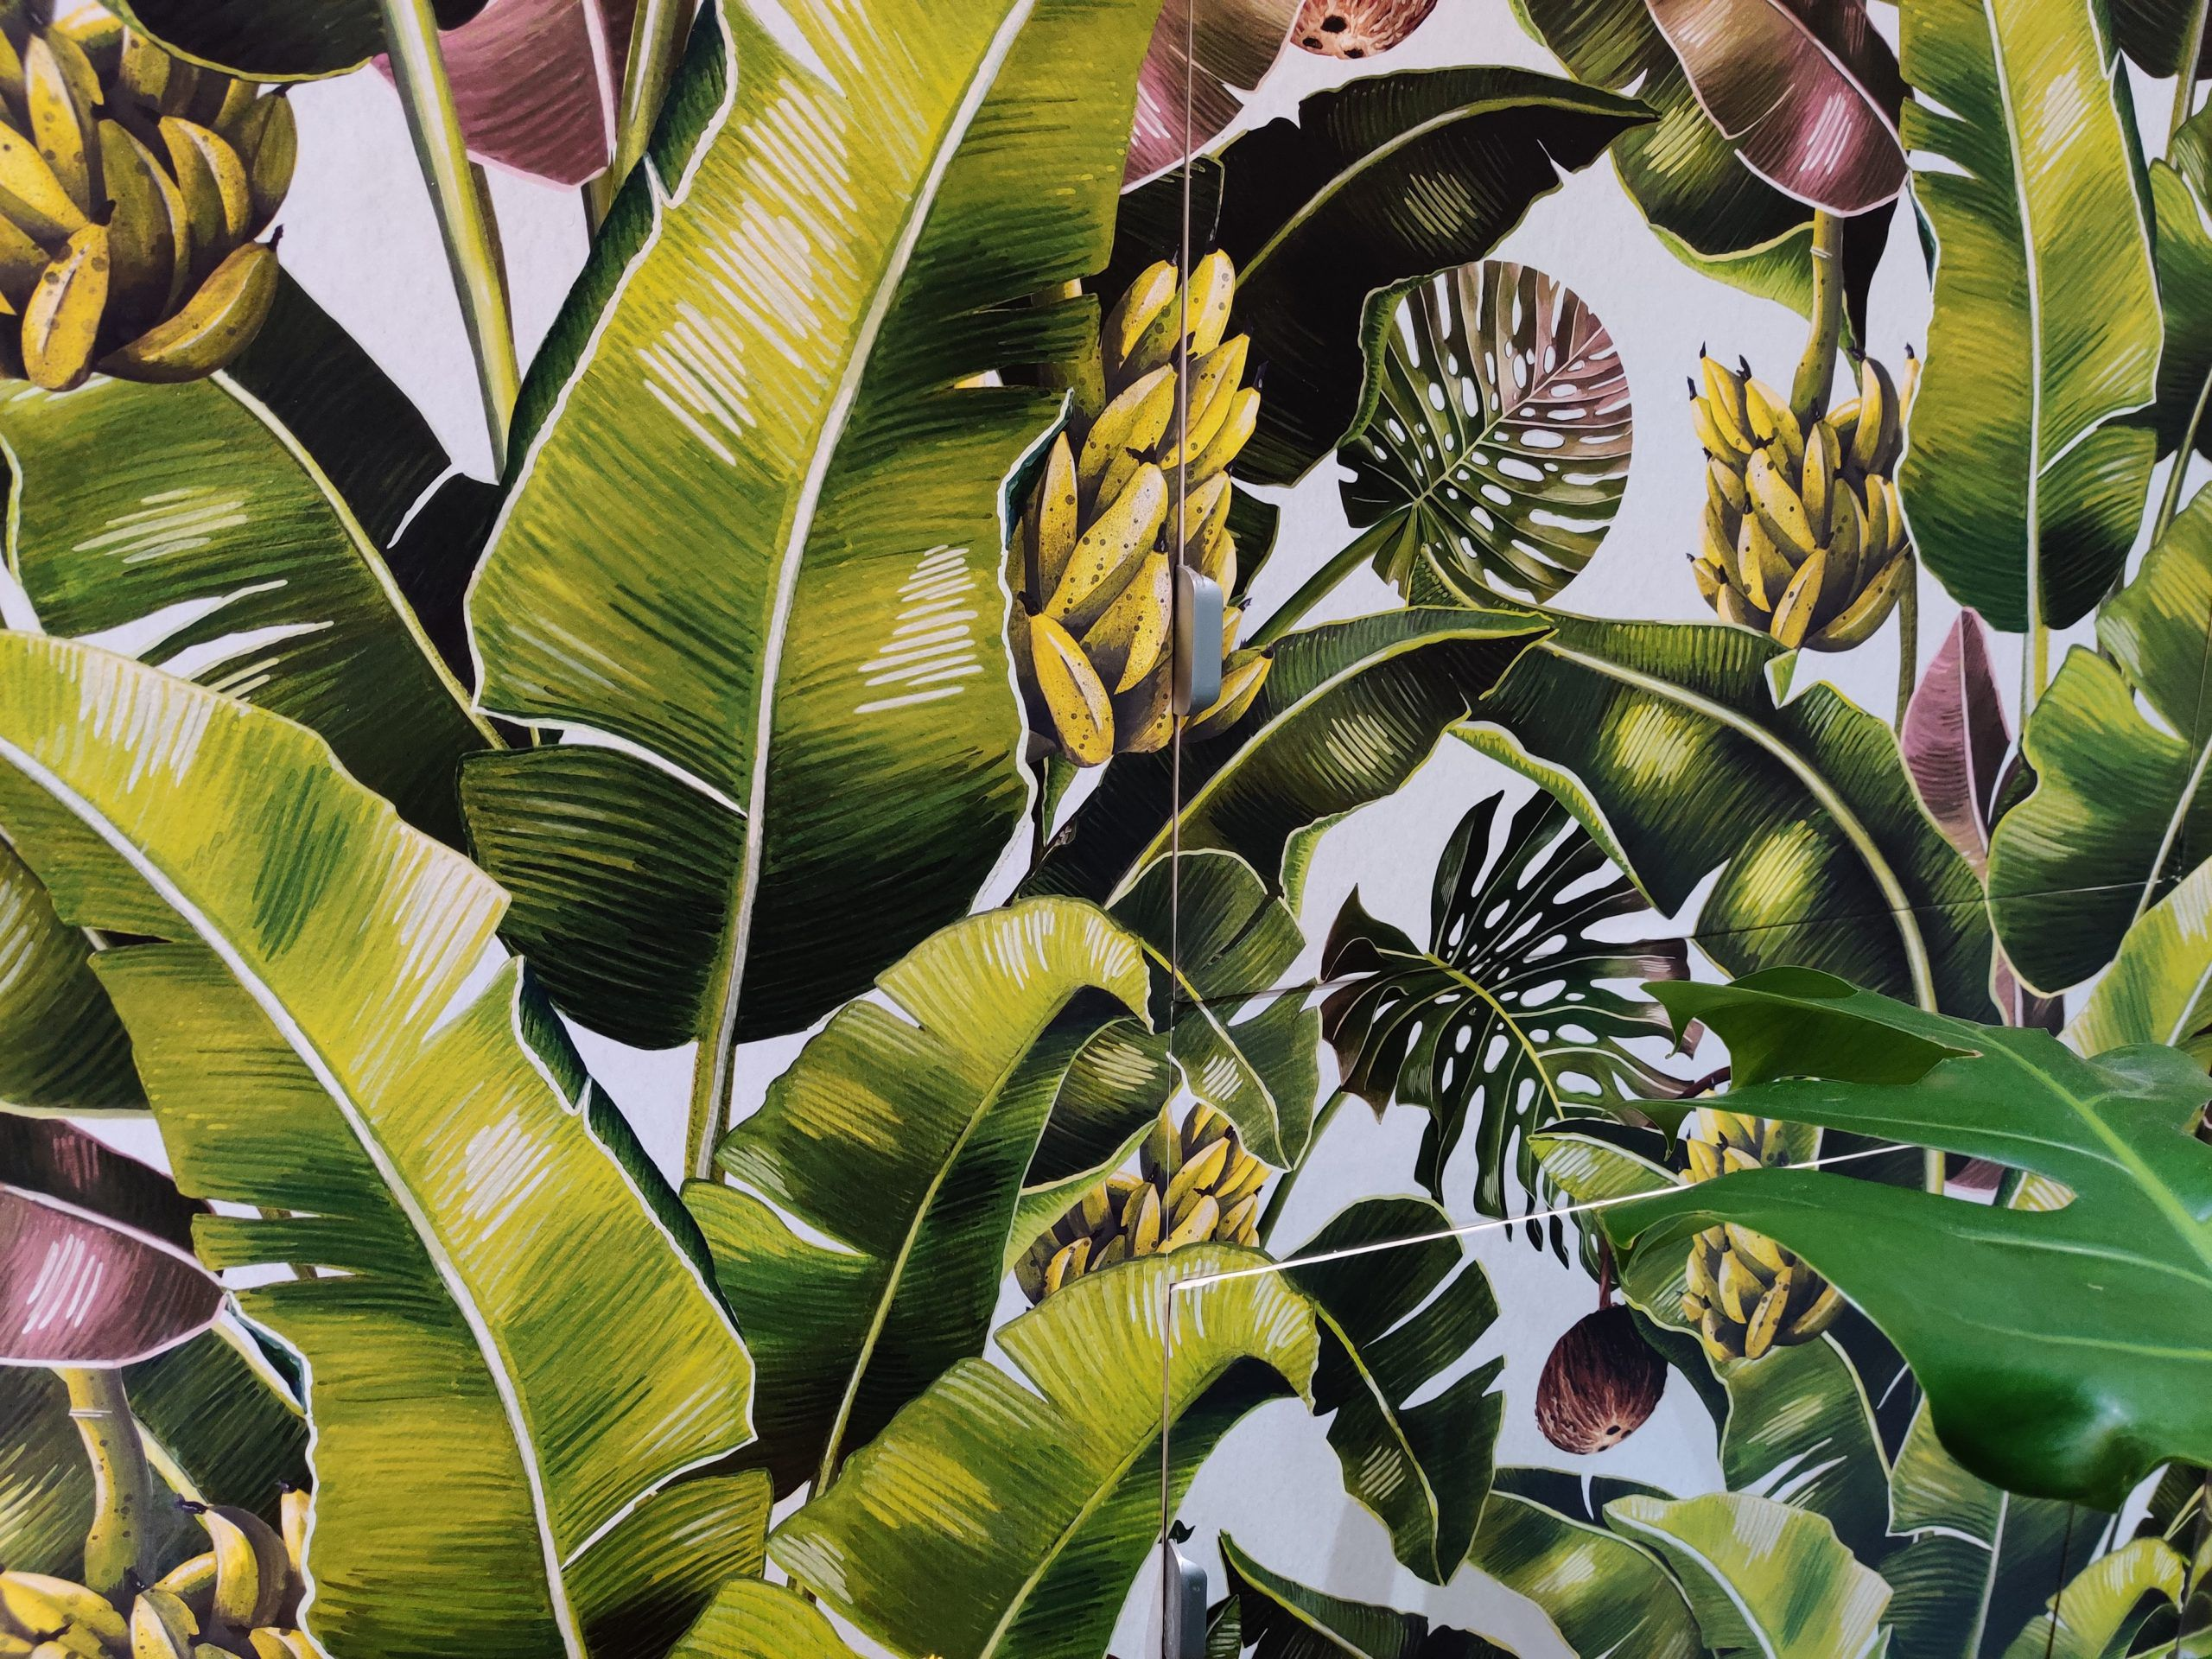 Kingdom Palm Wallpaper • Tropical Wallpaper •Wallpaper In the Bathroom • How To Waterproof Your Wallpaper • Michaela Livingstone-Banks • Andrew Dillon Decorating • Close Up Photo of Wallpaper